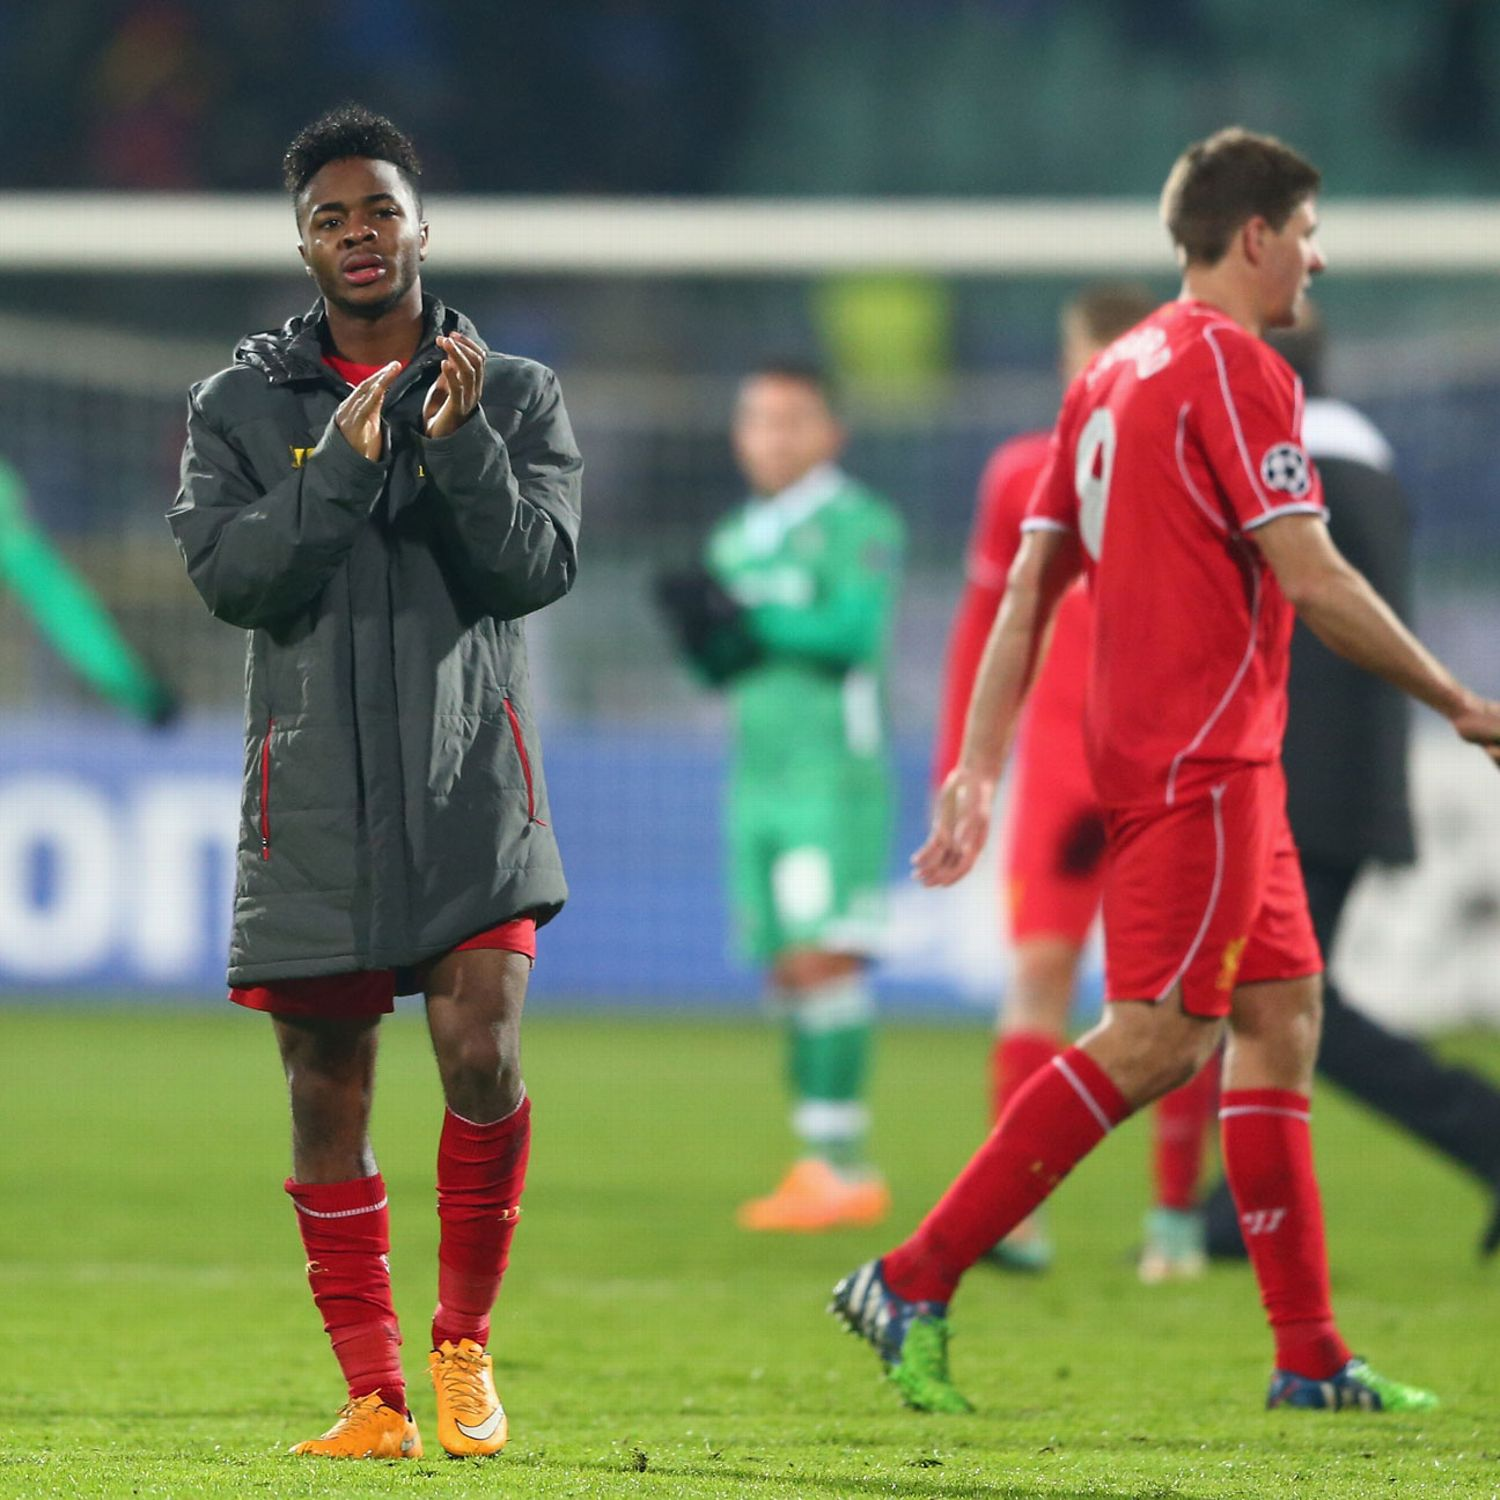 Liverpool V Barcelona Live Matchday Blog: Three Points From Ludogorets Vs. Liverpool In The UEFA